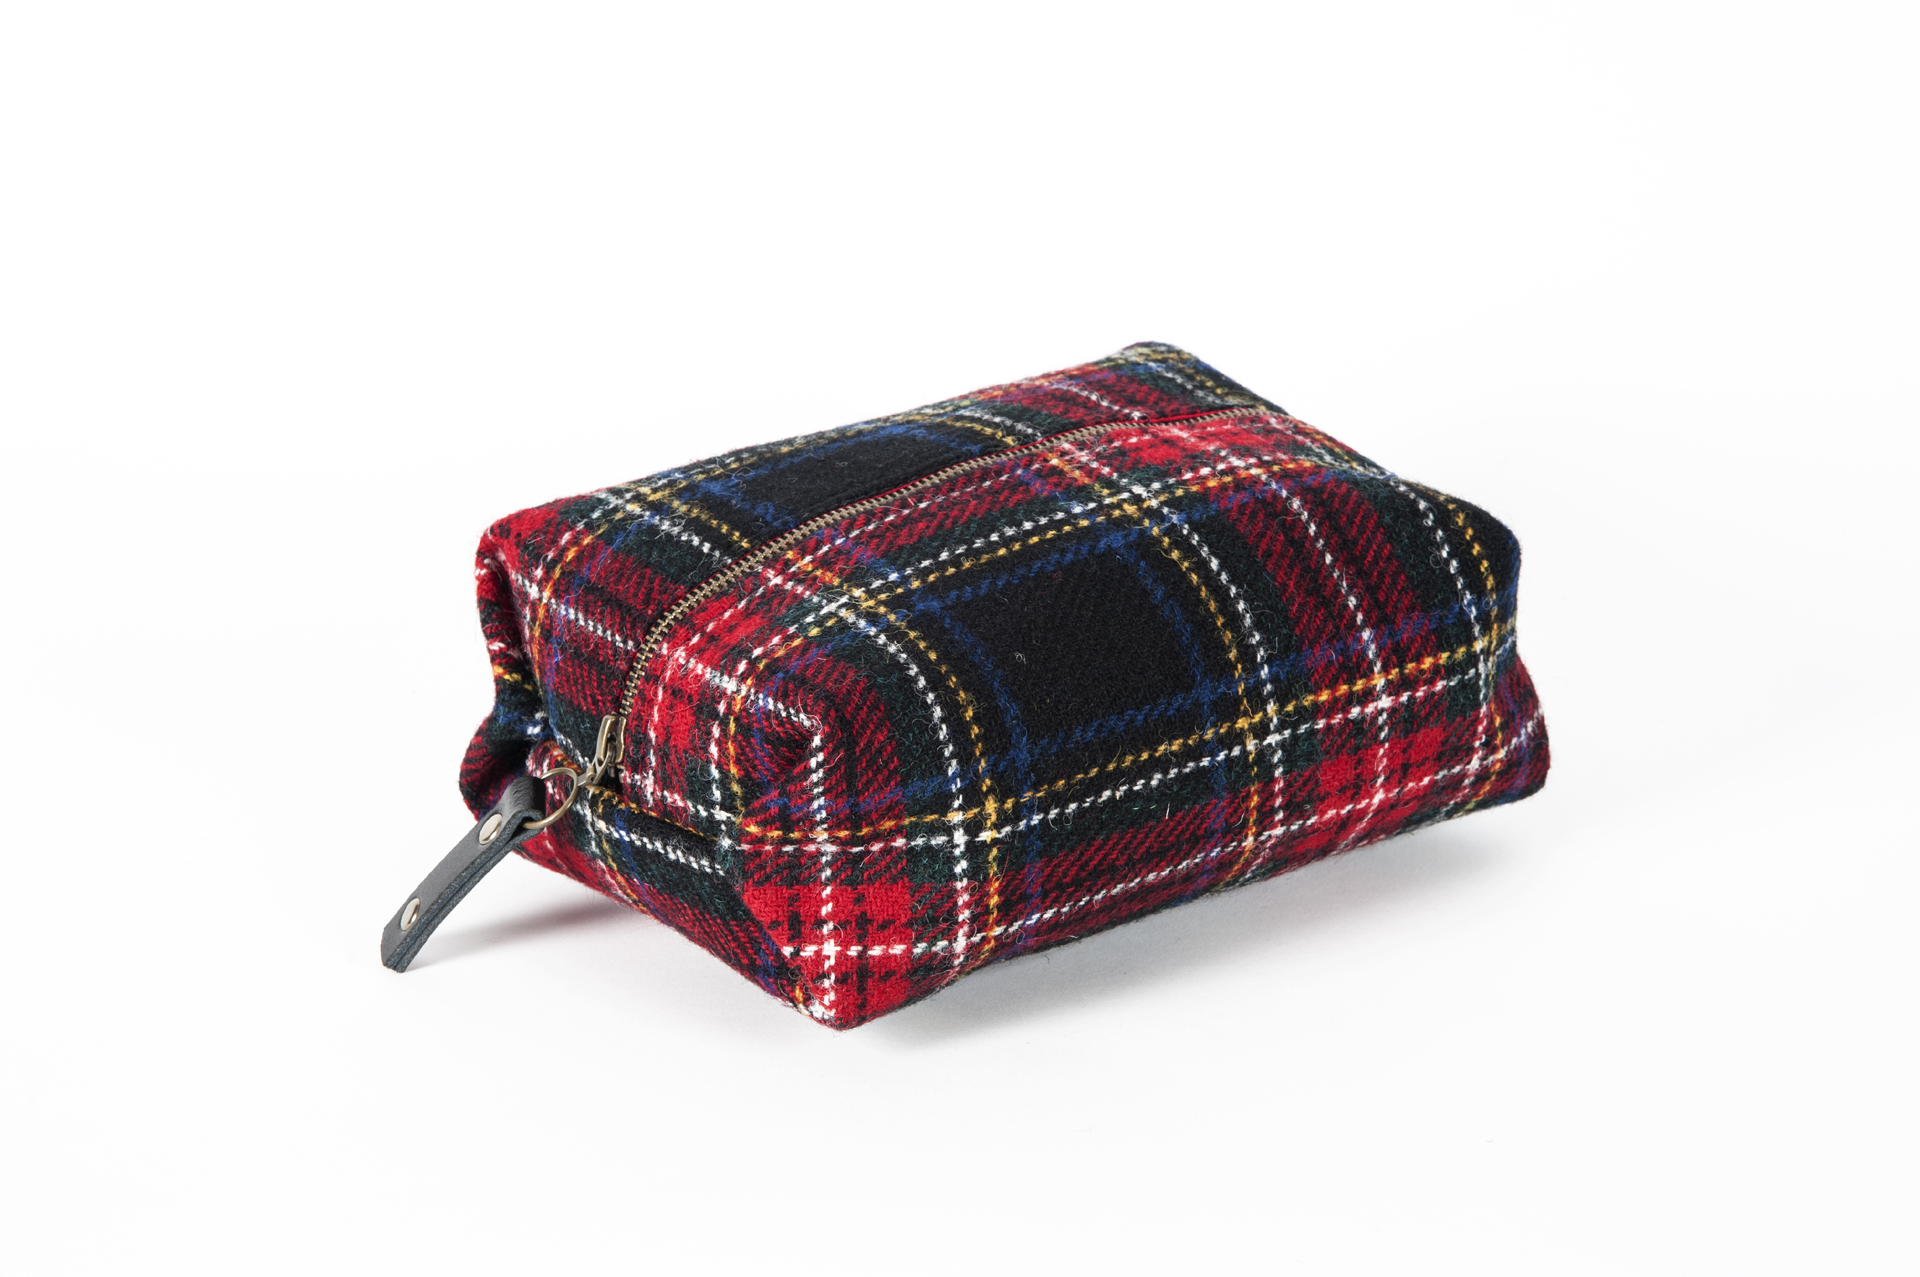 Gents Toiletry Bag